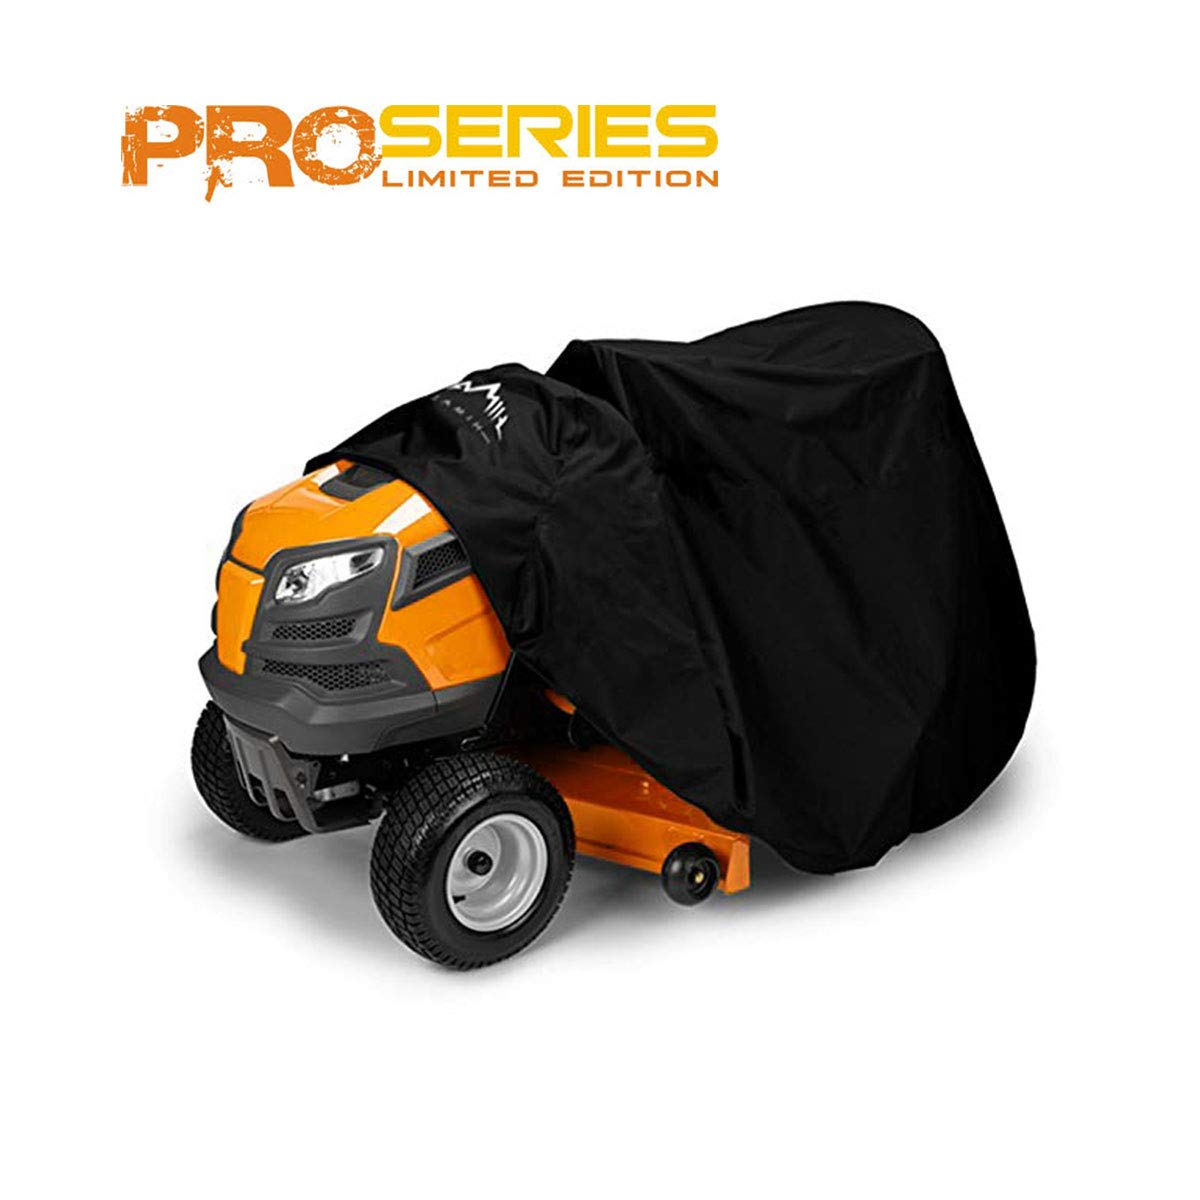 Himal Pro Lawn Mower Cover - Heavy Duty 600D Polyester Oxford, Waterproof, UV Resistant, Universal Size Tractor Cover Fits Decks up to 54'' with Storage Bag, Black by Himal Outdoors